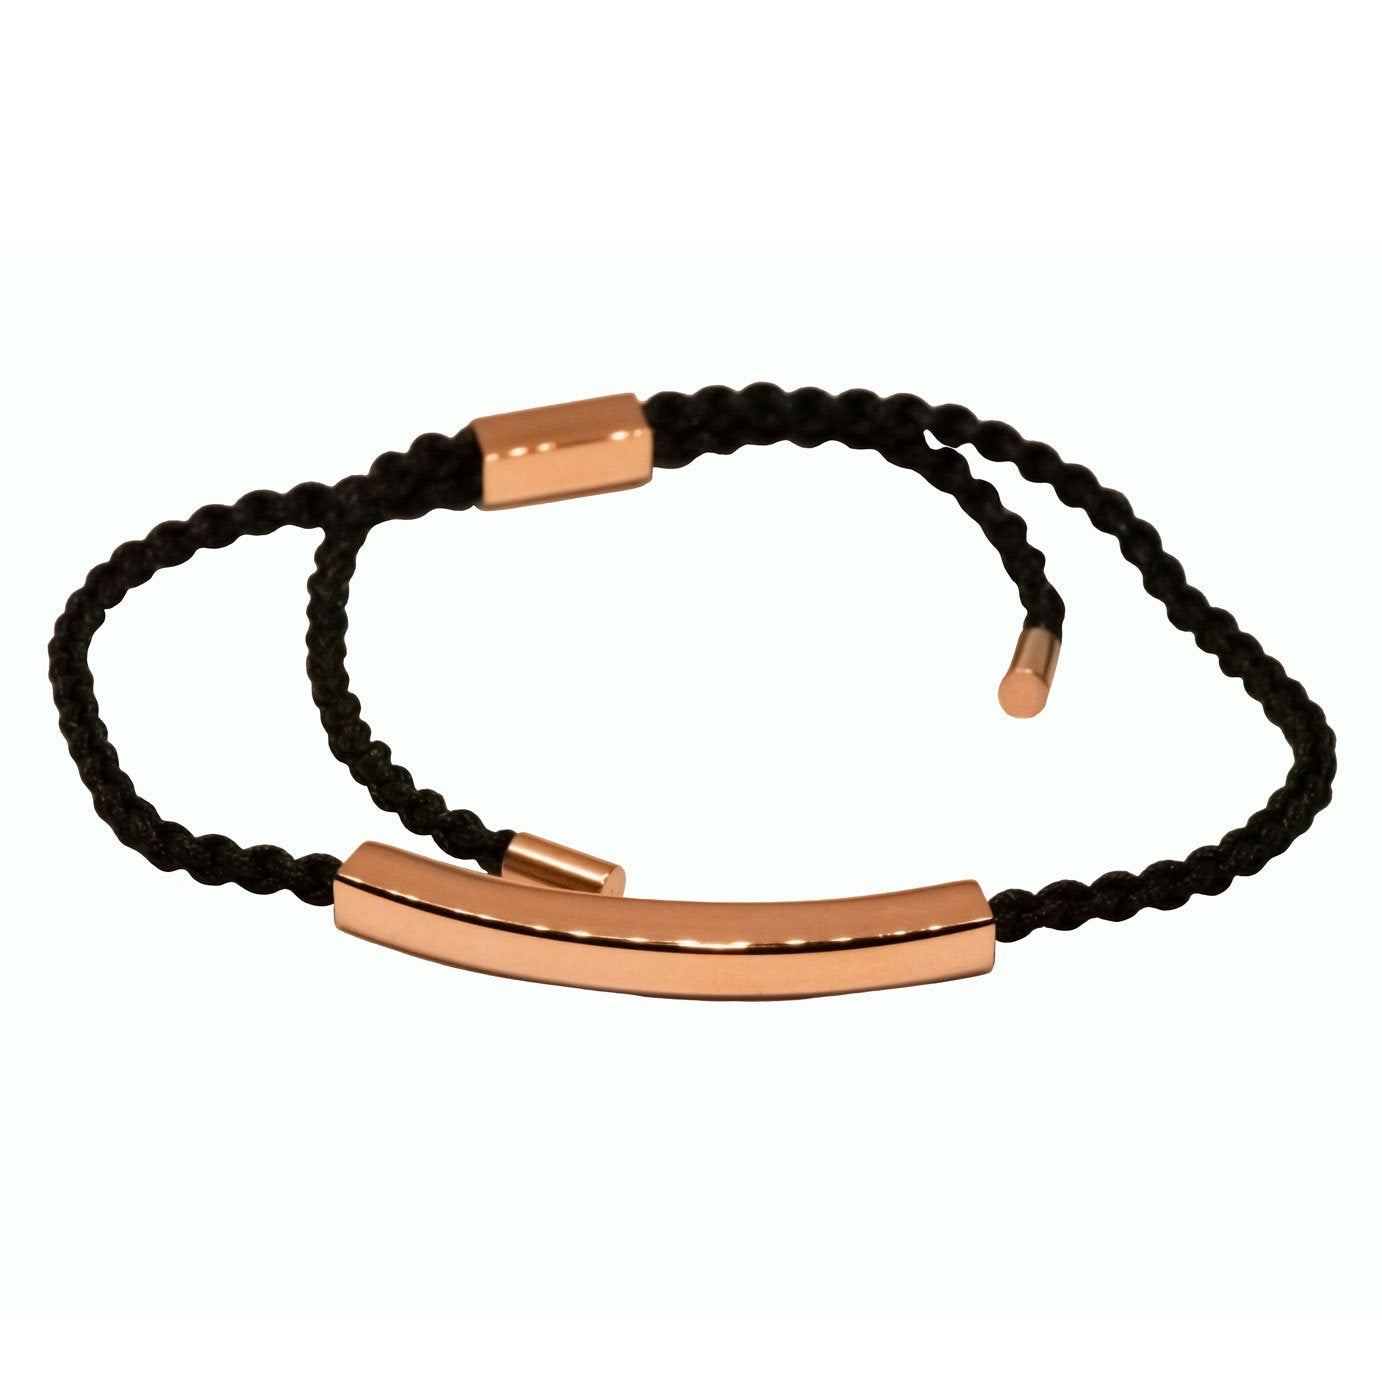 Black cord bracelet with rose gold 9ct vermeil bar